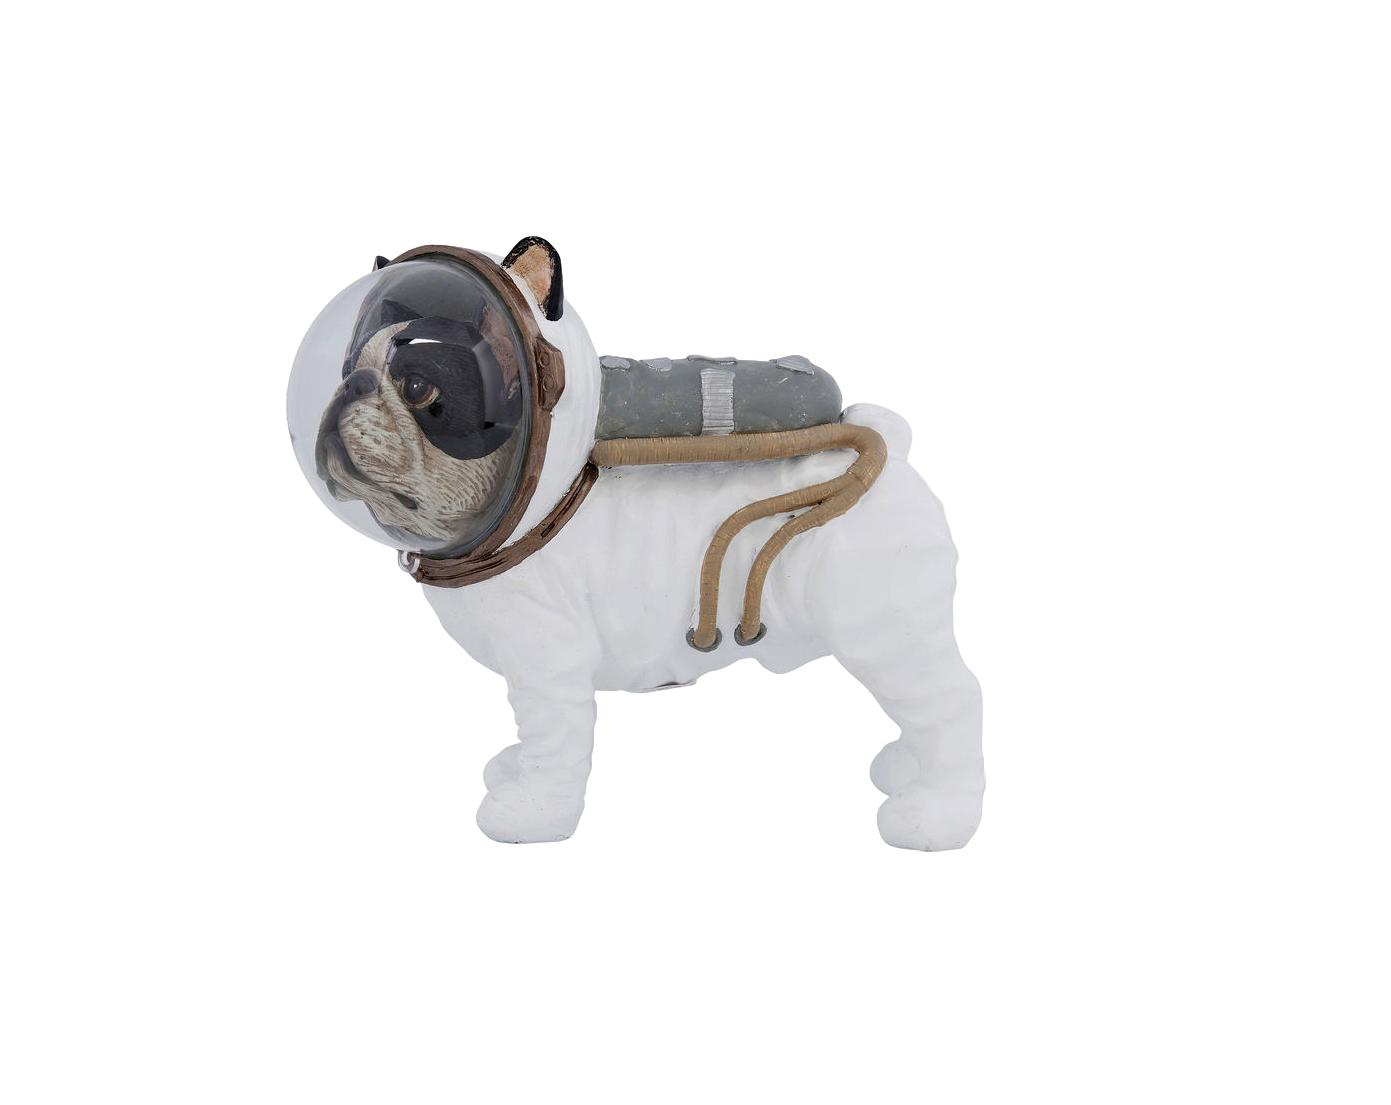 KARE DESIGN DECO FIGURINE SPACE DOG 21CM 21X25X12CM